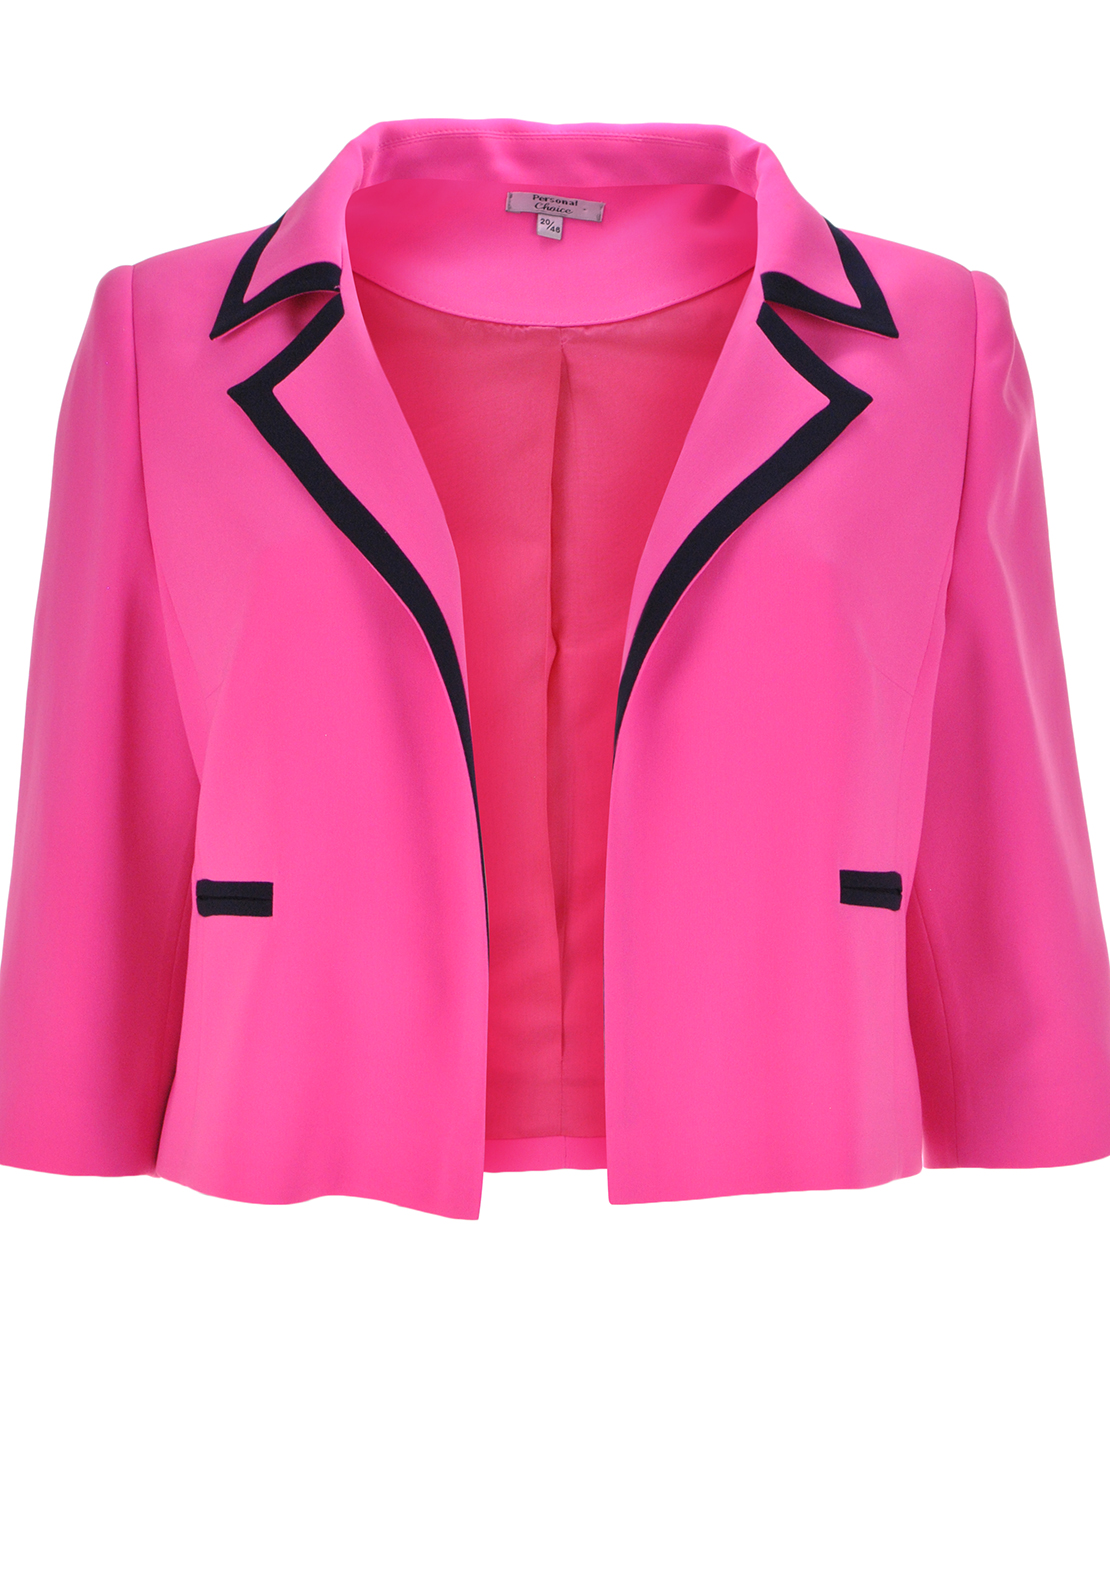 Personal Choice Contrast Trim Jacket, Hot Pink